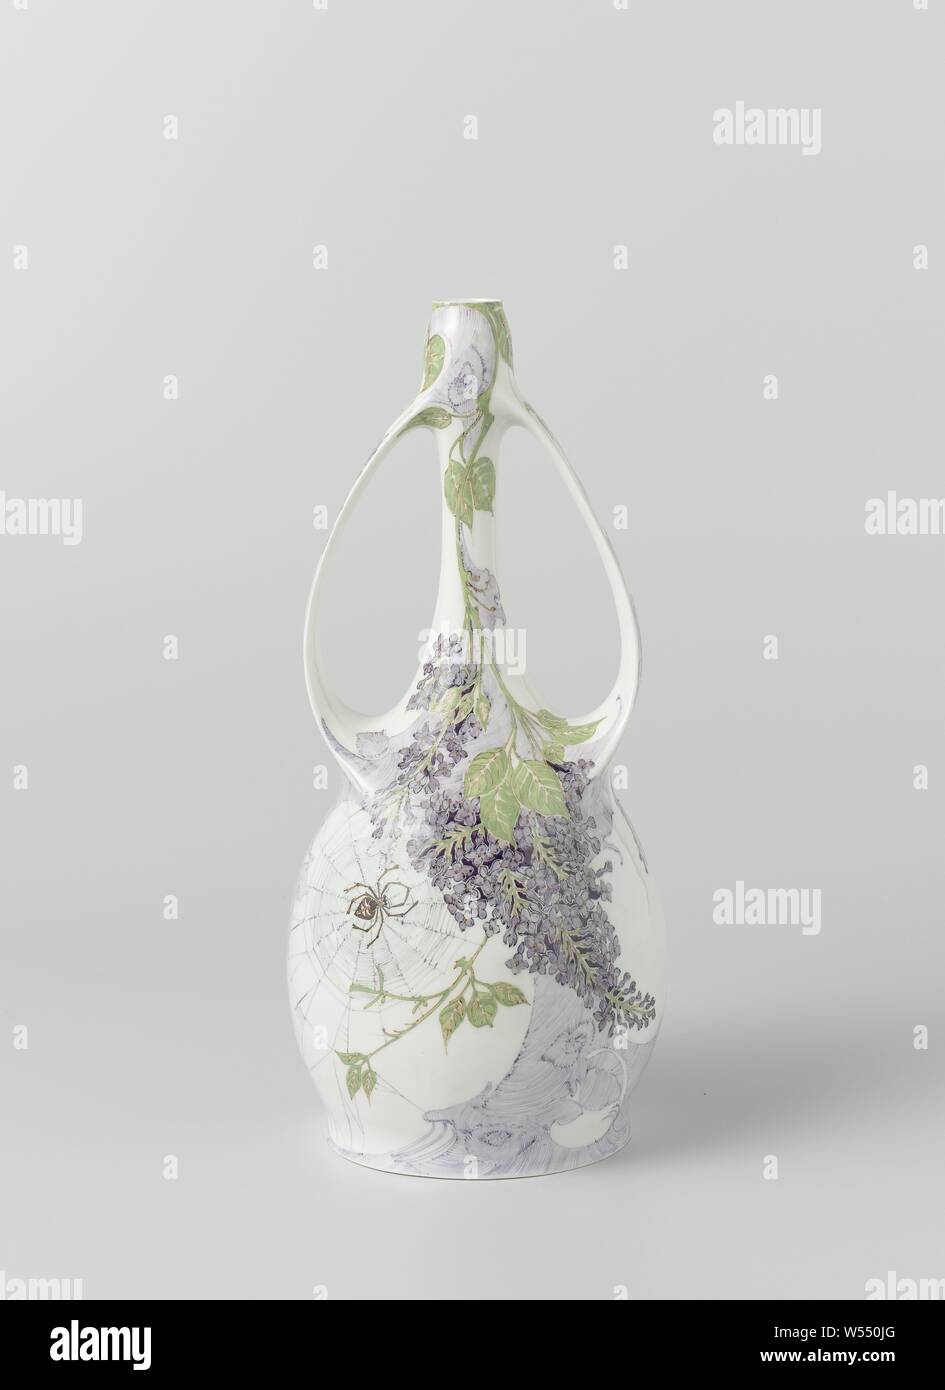 Vase painted with branches with lilacs and a spider in its web, Porcelain vase with two ears and a spherical body. The long slender neck widens upwards. The ears are flattened and run between the shoulder and the top of the neck. Painted on both sides with branches with lilacs in purple, green and brown, and with a spider in its web in shades of brown and gray-green, flowers, spiders, N.V. Haagsche Plateelfabriek Rozenburg, The Hague, 1902, porcelain (material), h 27.7 cm × d 13 cm Stock Photo